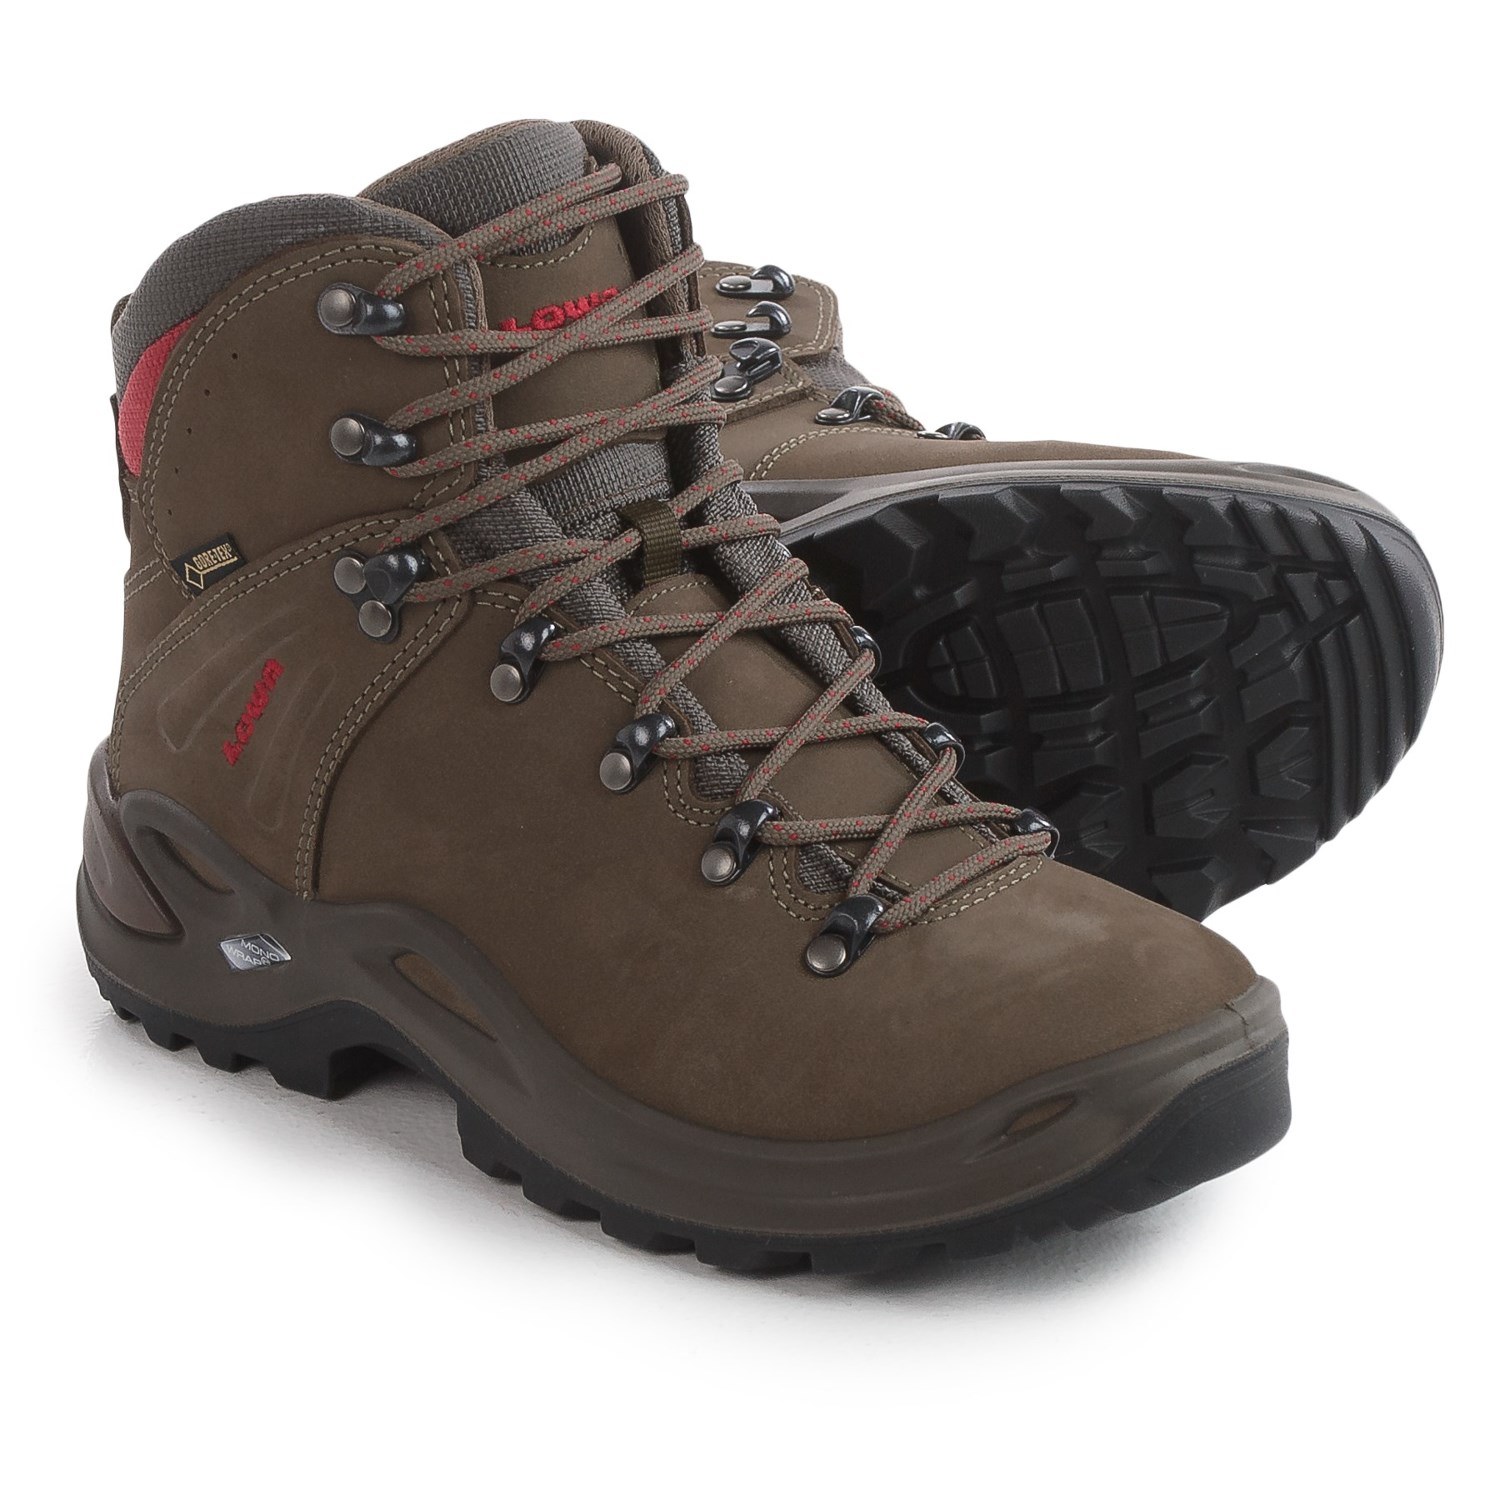 Lowa Ronan Gore-Tex® Mid Hiking Boots (For Women) - Save 65%